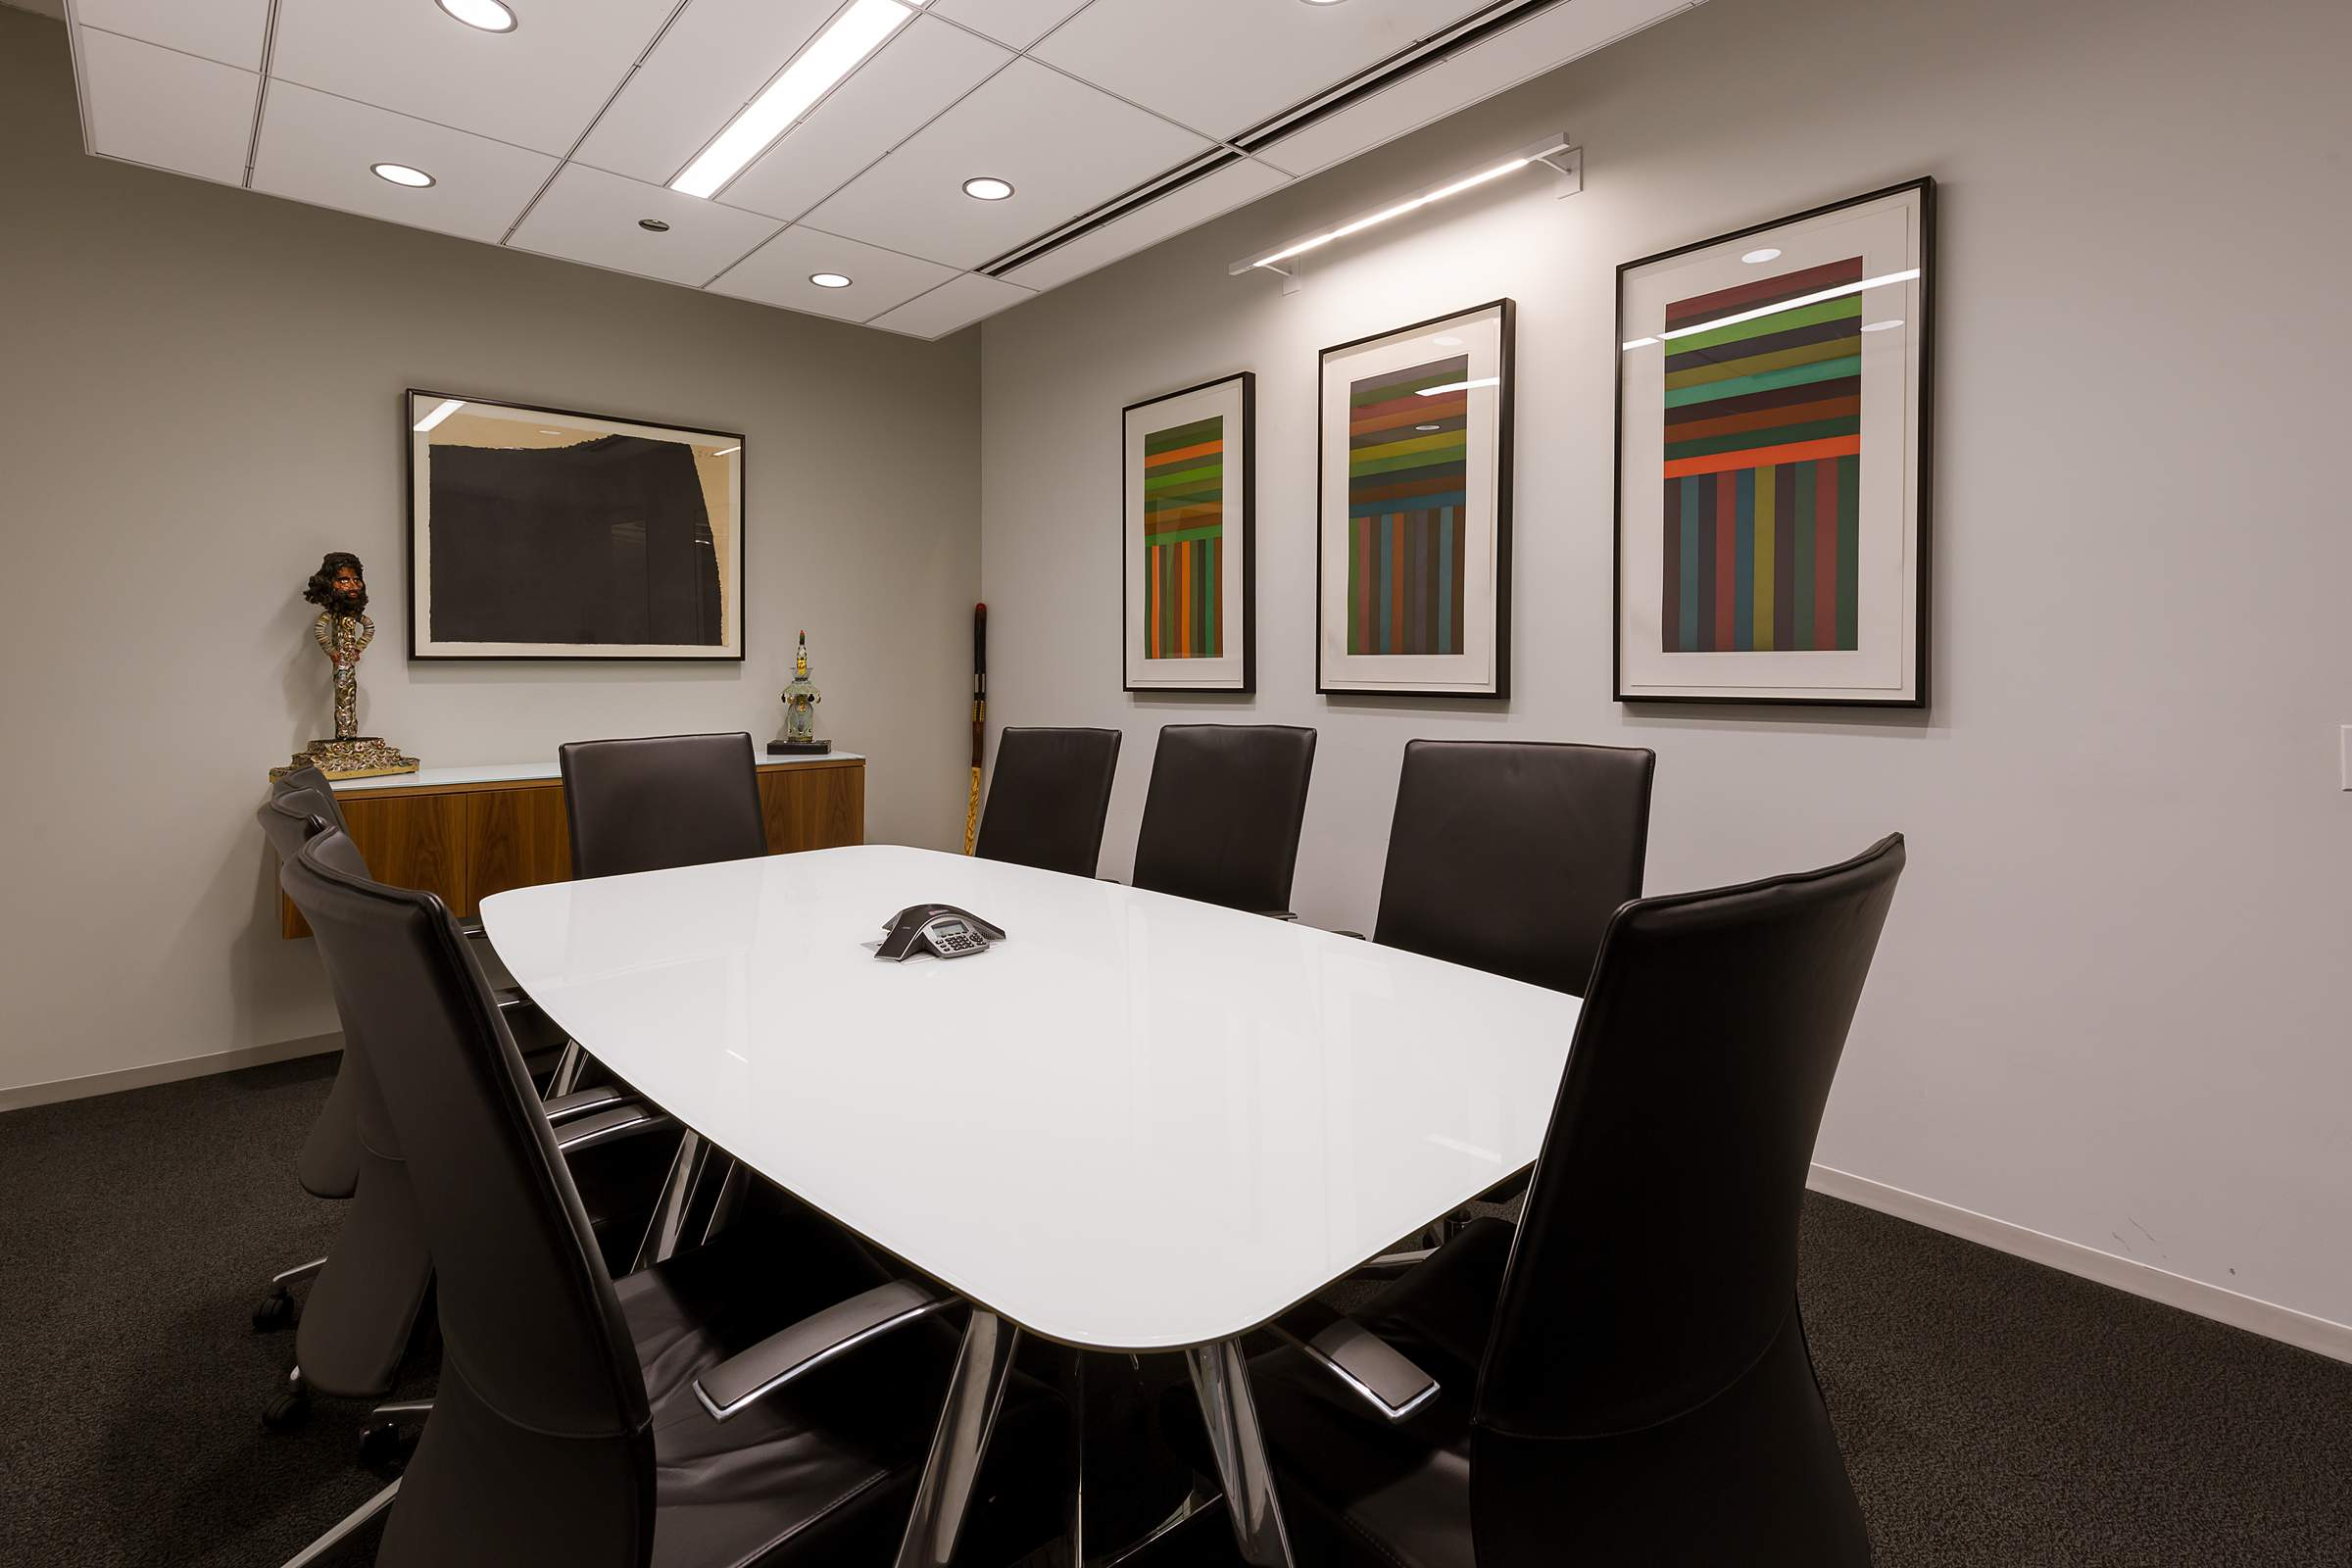 post law office interior. Share This Post Law Office Interior R